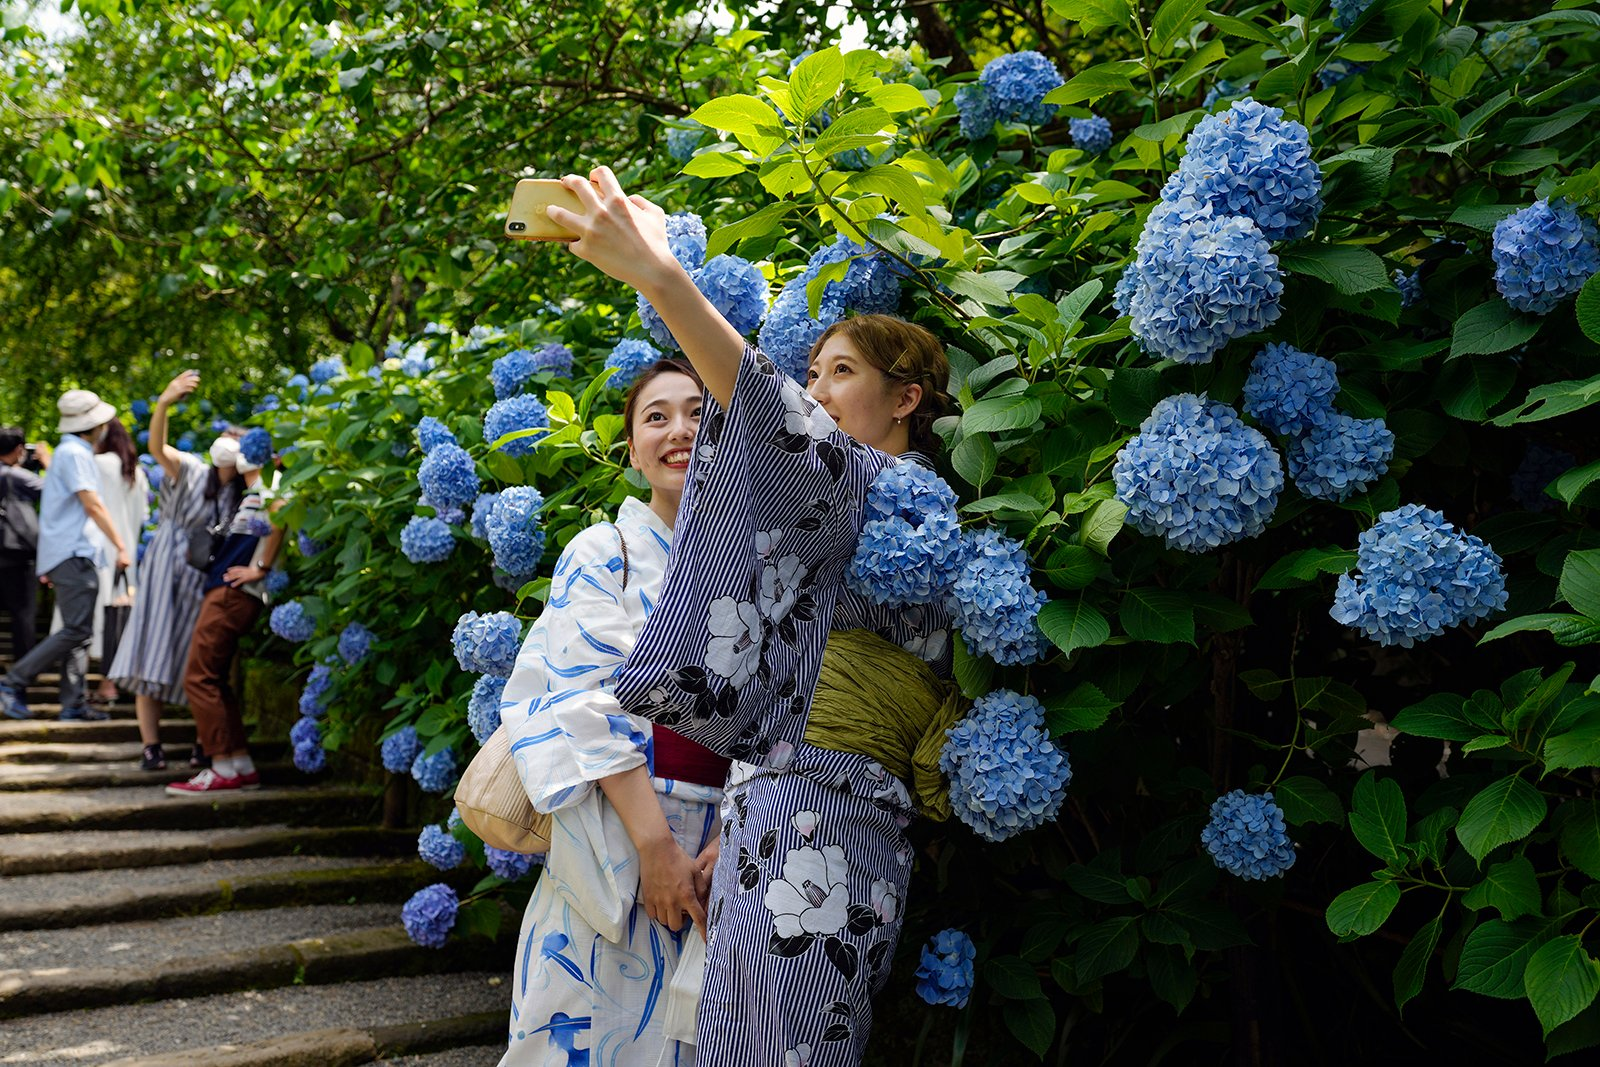 Visitors take pictures with blooming hydrangea flowers at Meigetsu-in Buddhist temple, Friday, June 11, 2021, in Kamakura, Japan, south of Tokyo. (AP Photo/Kiichiro Sato)